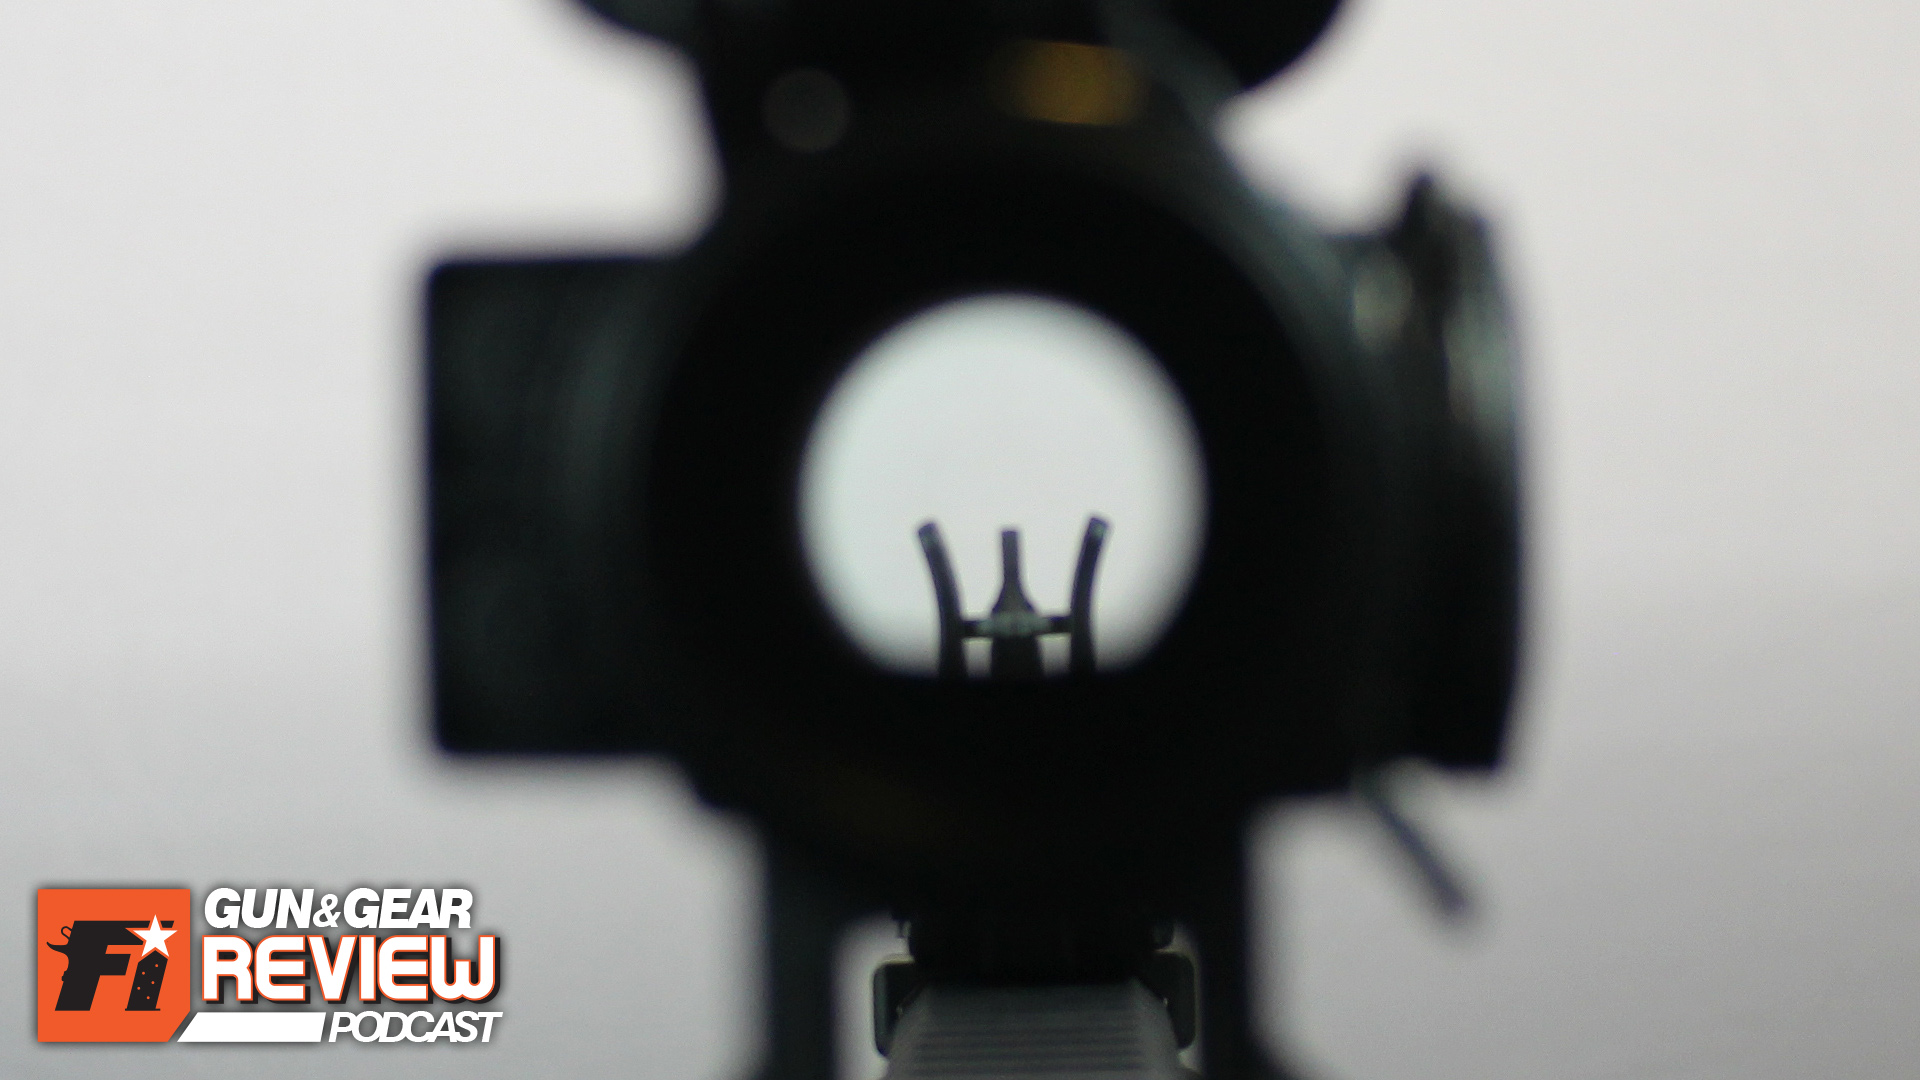 The inline configuration of the M²Sights has the traditional M16 sight picture, except for the partially exposed threads of A2 front sight post. -